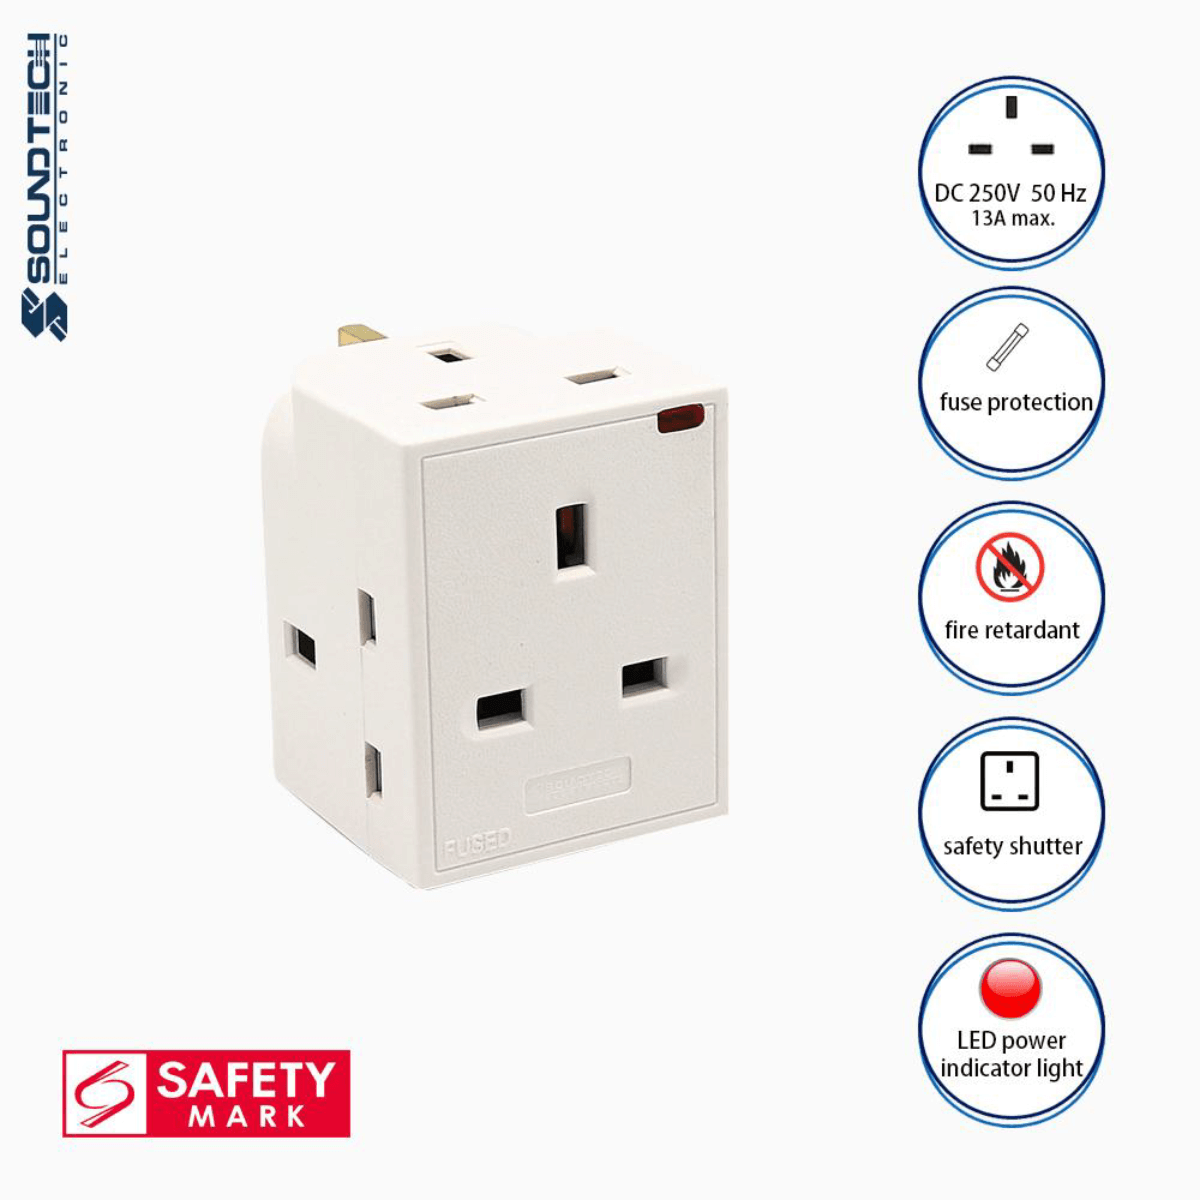 Soundteoh 3 Multiway Adaptor W/ Indicator Light PP-36N